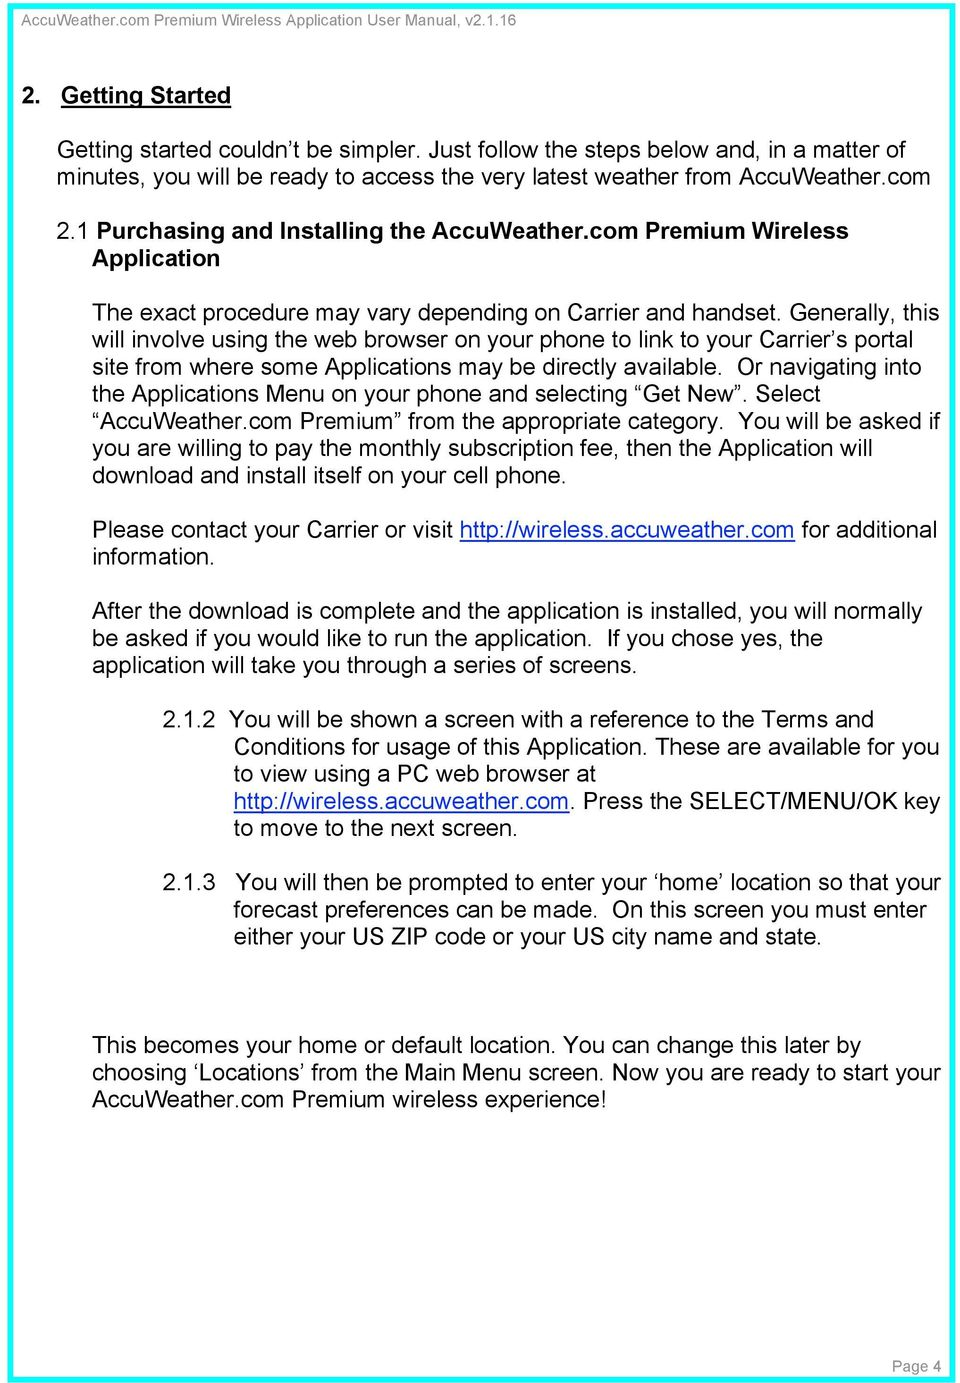 AccuWeather com Premium User Manual - PDF